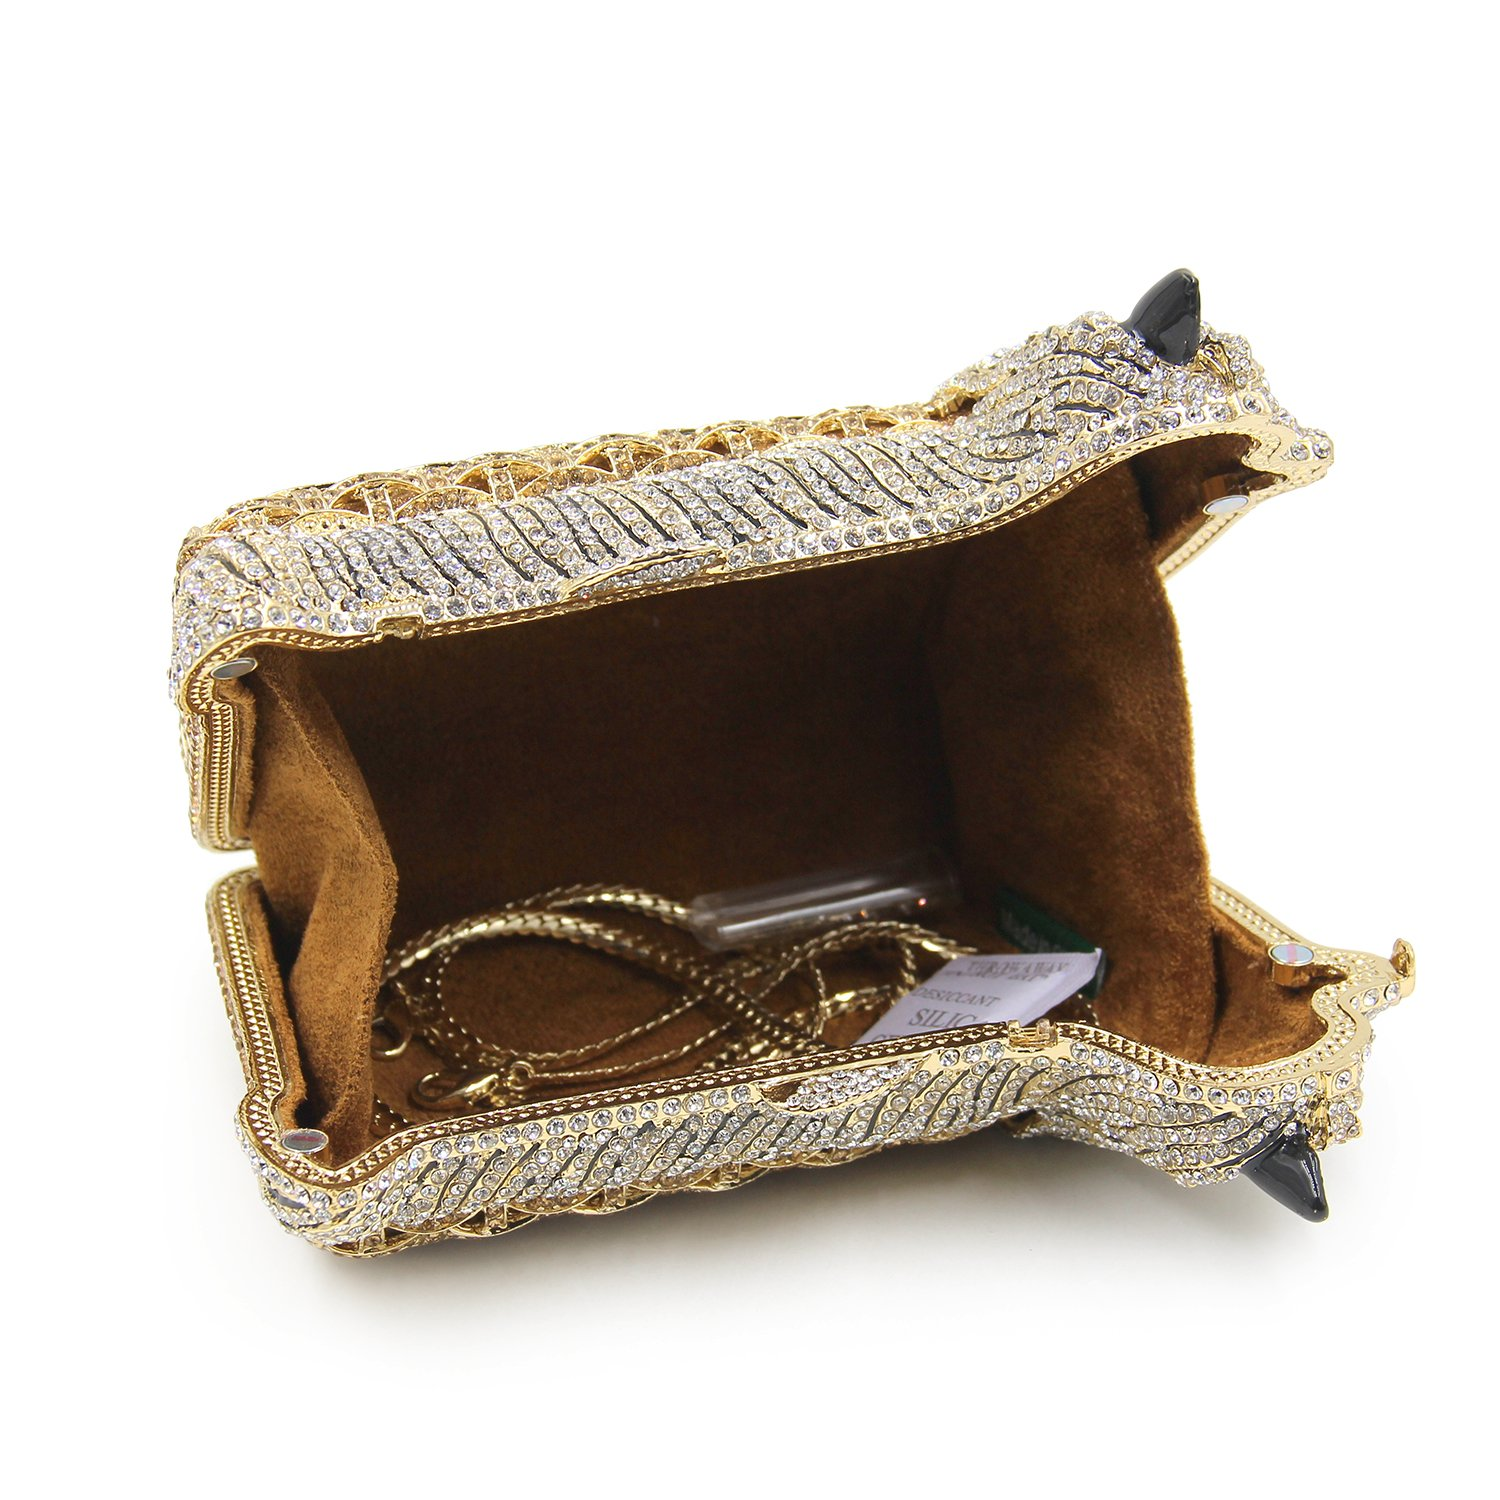 Milisente Women Evening Bag Puppy Crystal Clutch Purse Party Evening Handbag (Gold) by Milisente (Image #7)